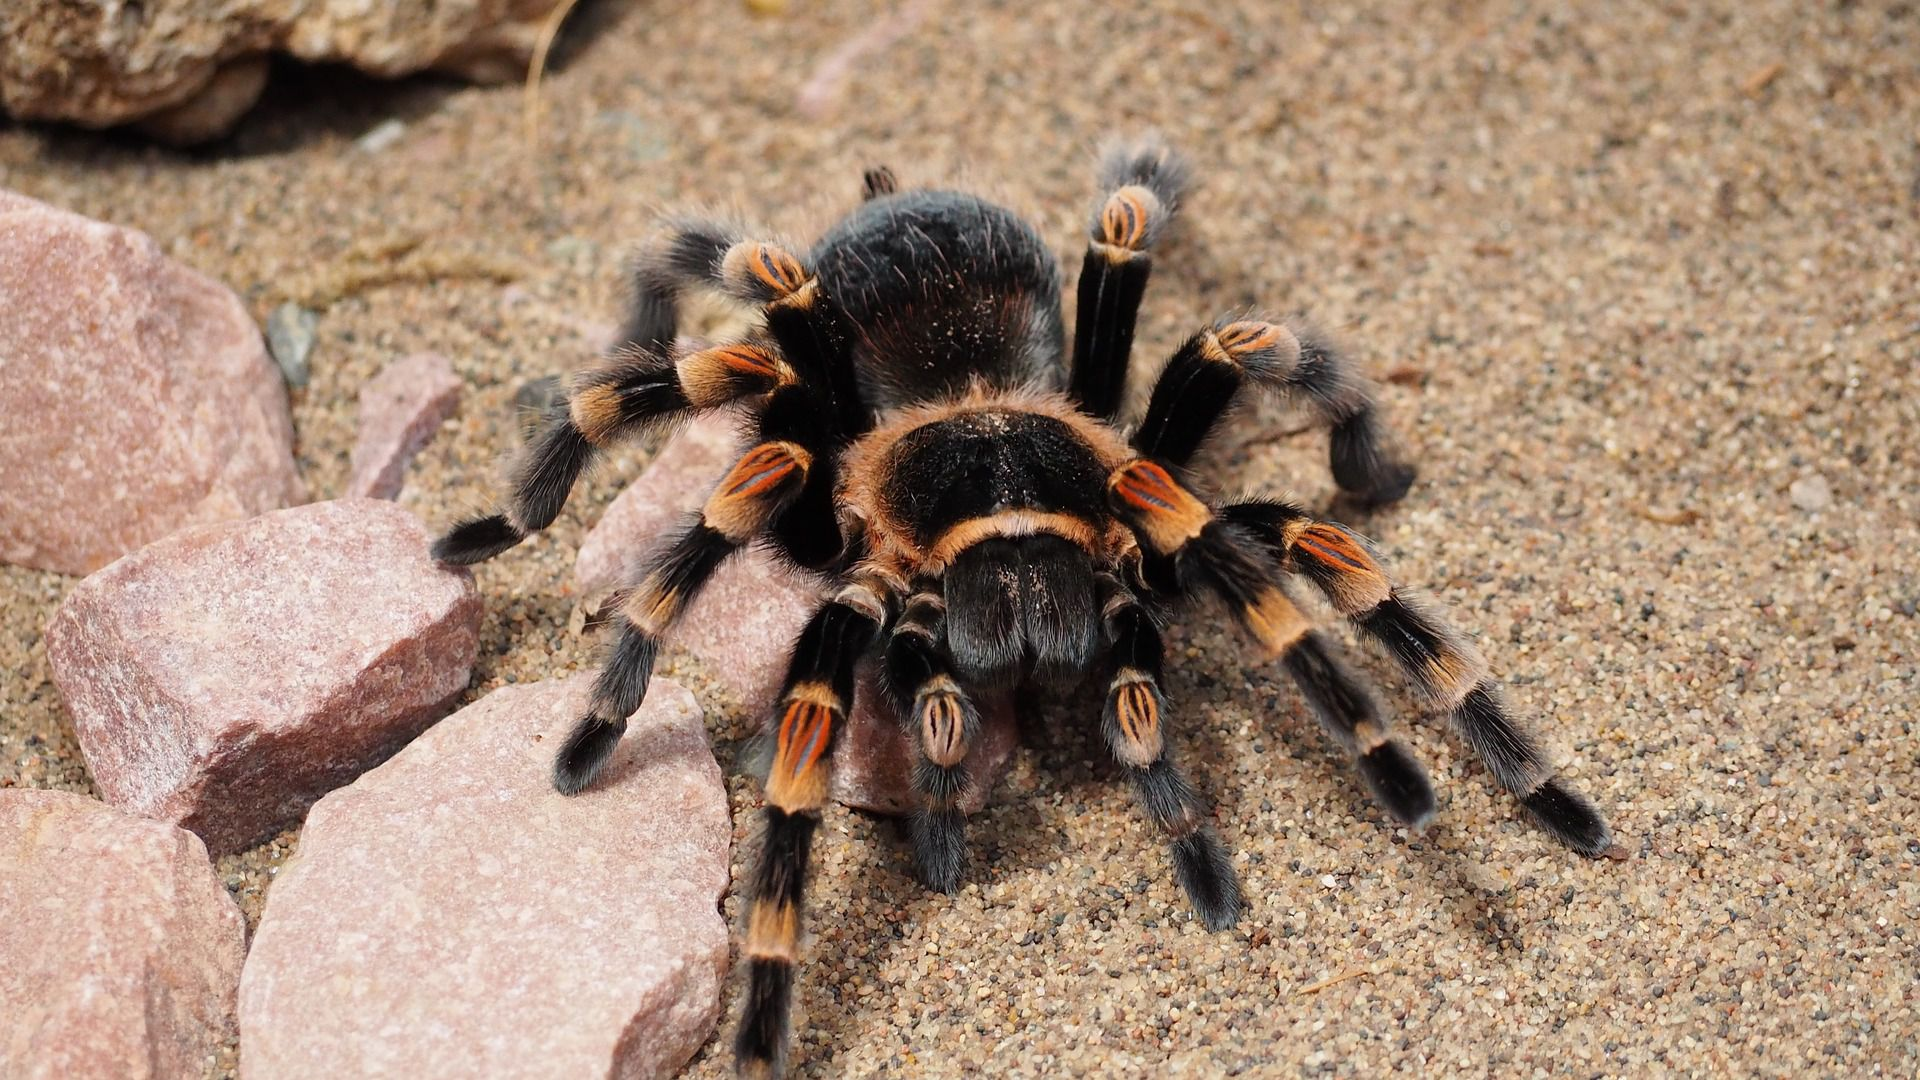 Comprehensive Information on Care and Feeding Housing The Tarantula Keepers Guide